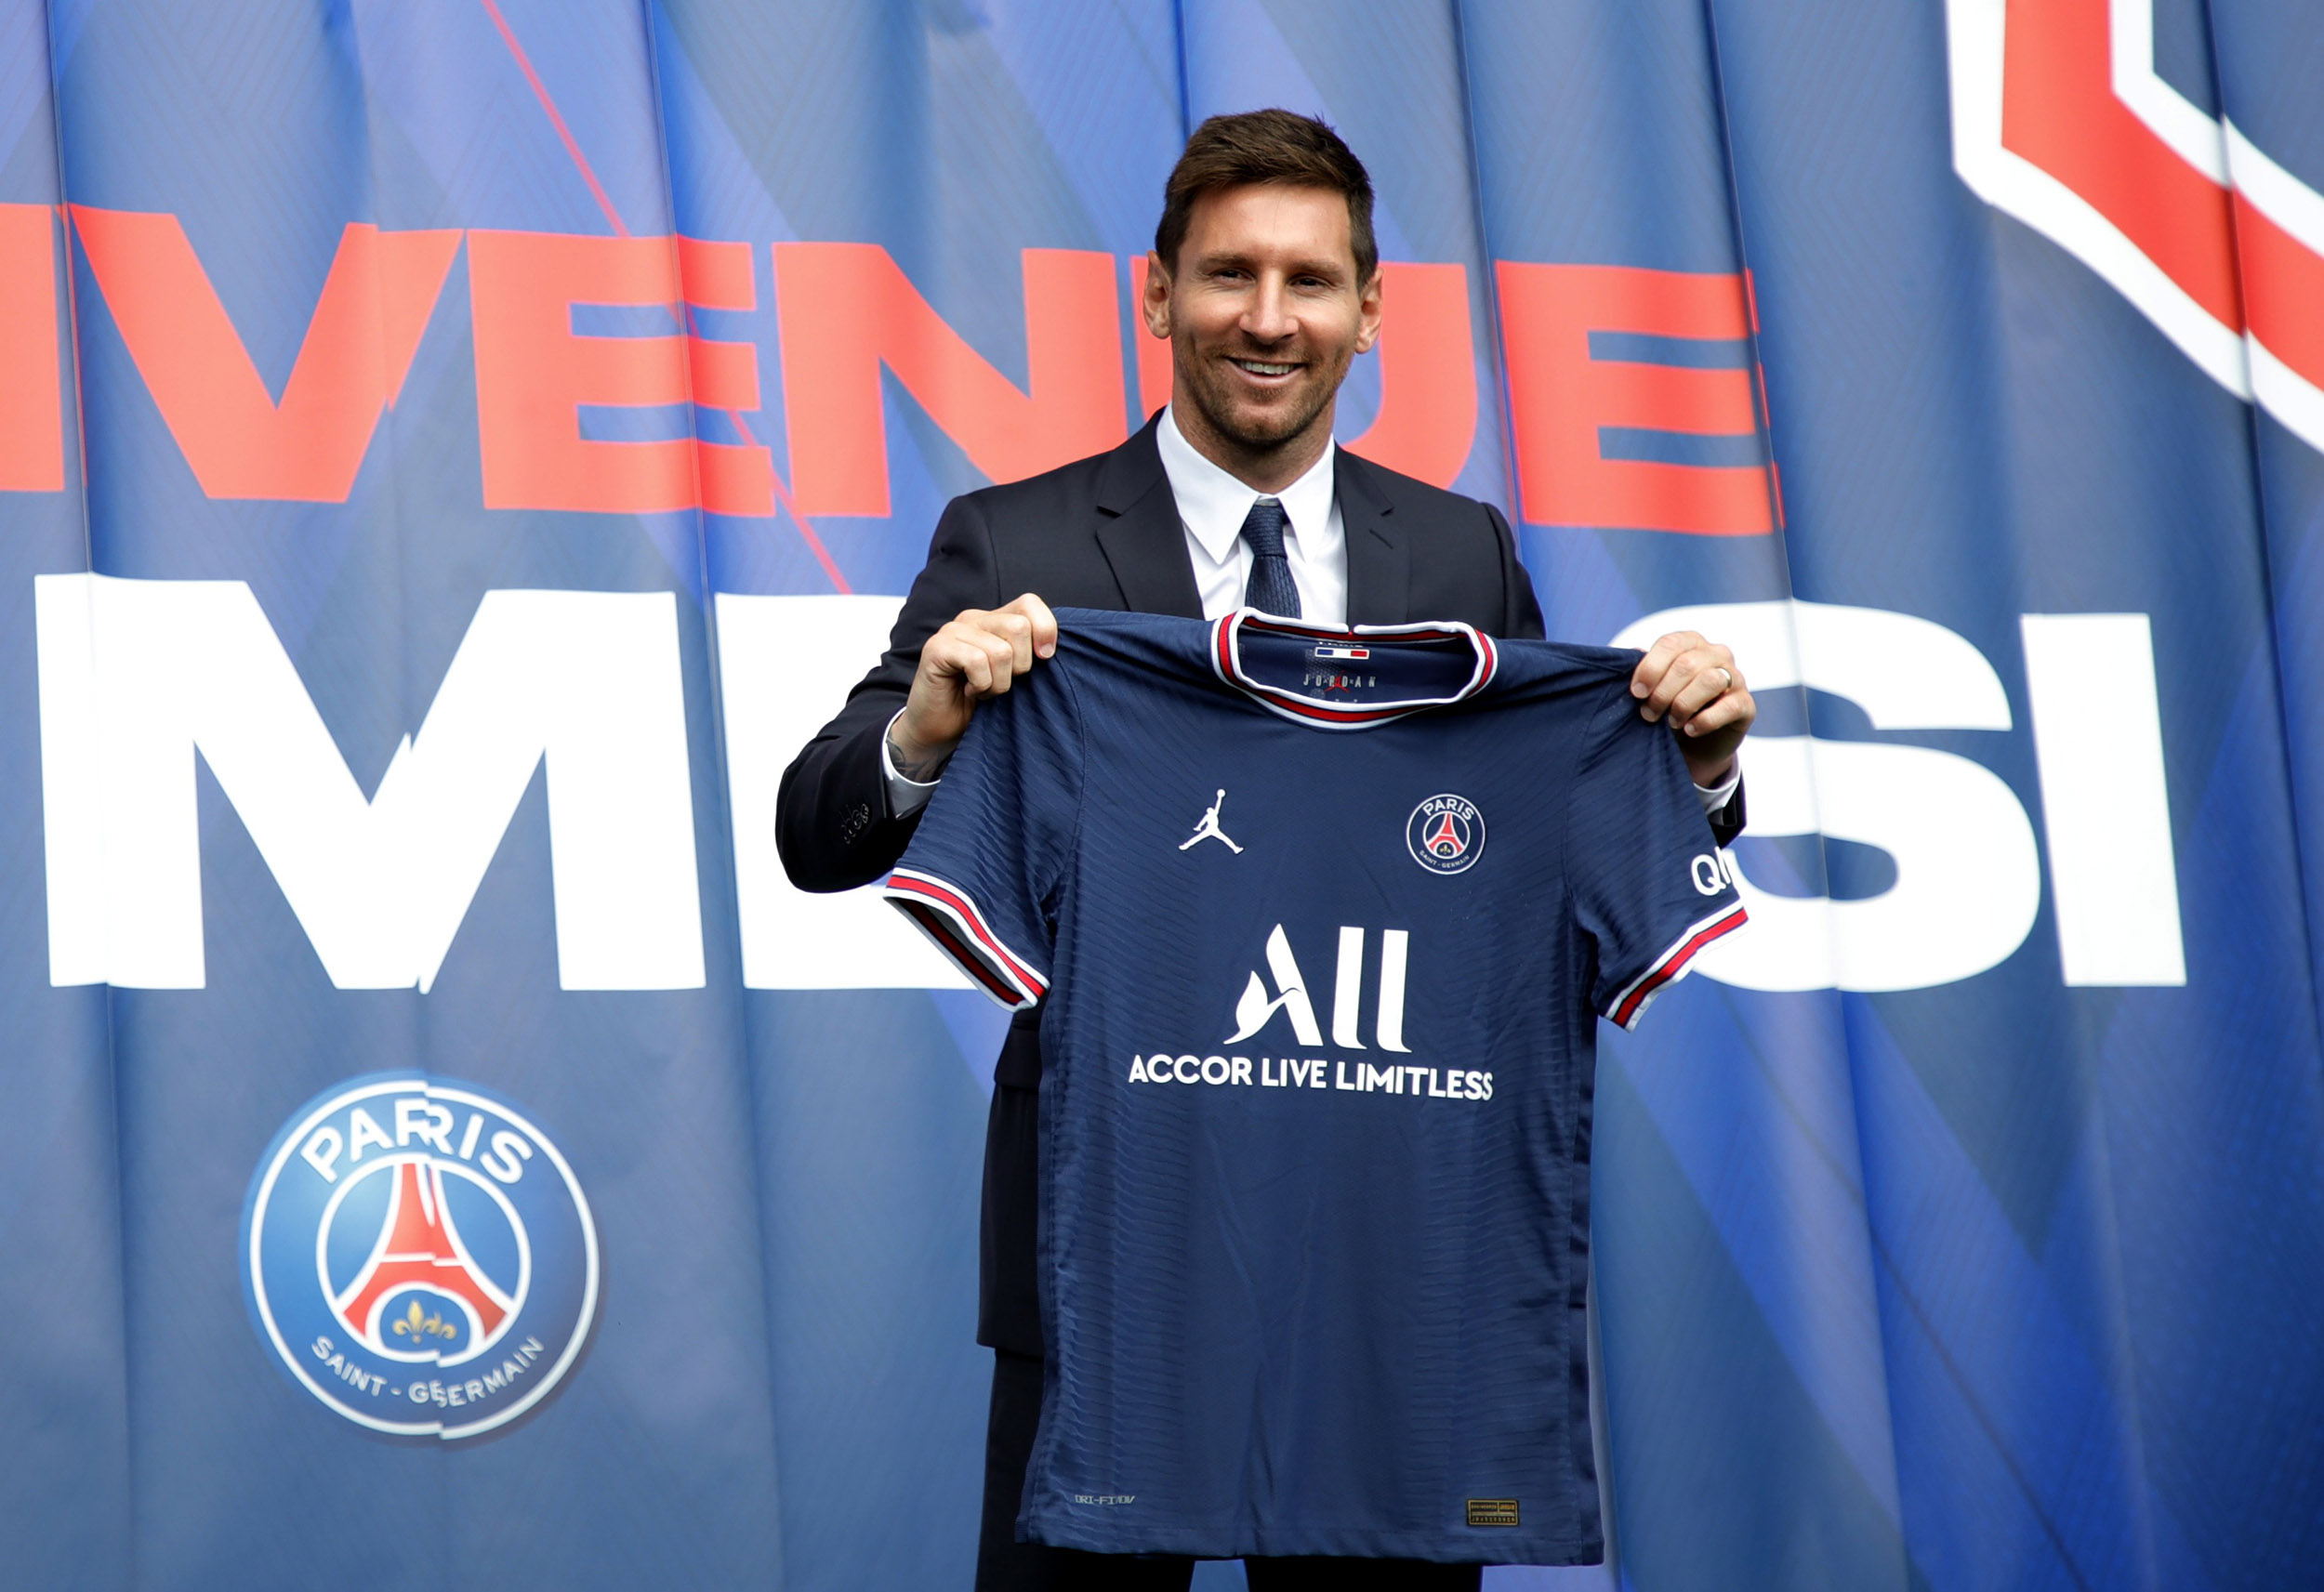 Soccer icon Messi signs with French giants PSG after shock Barcelona exit